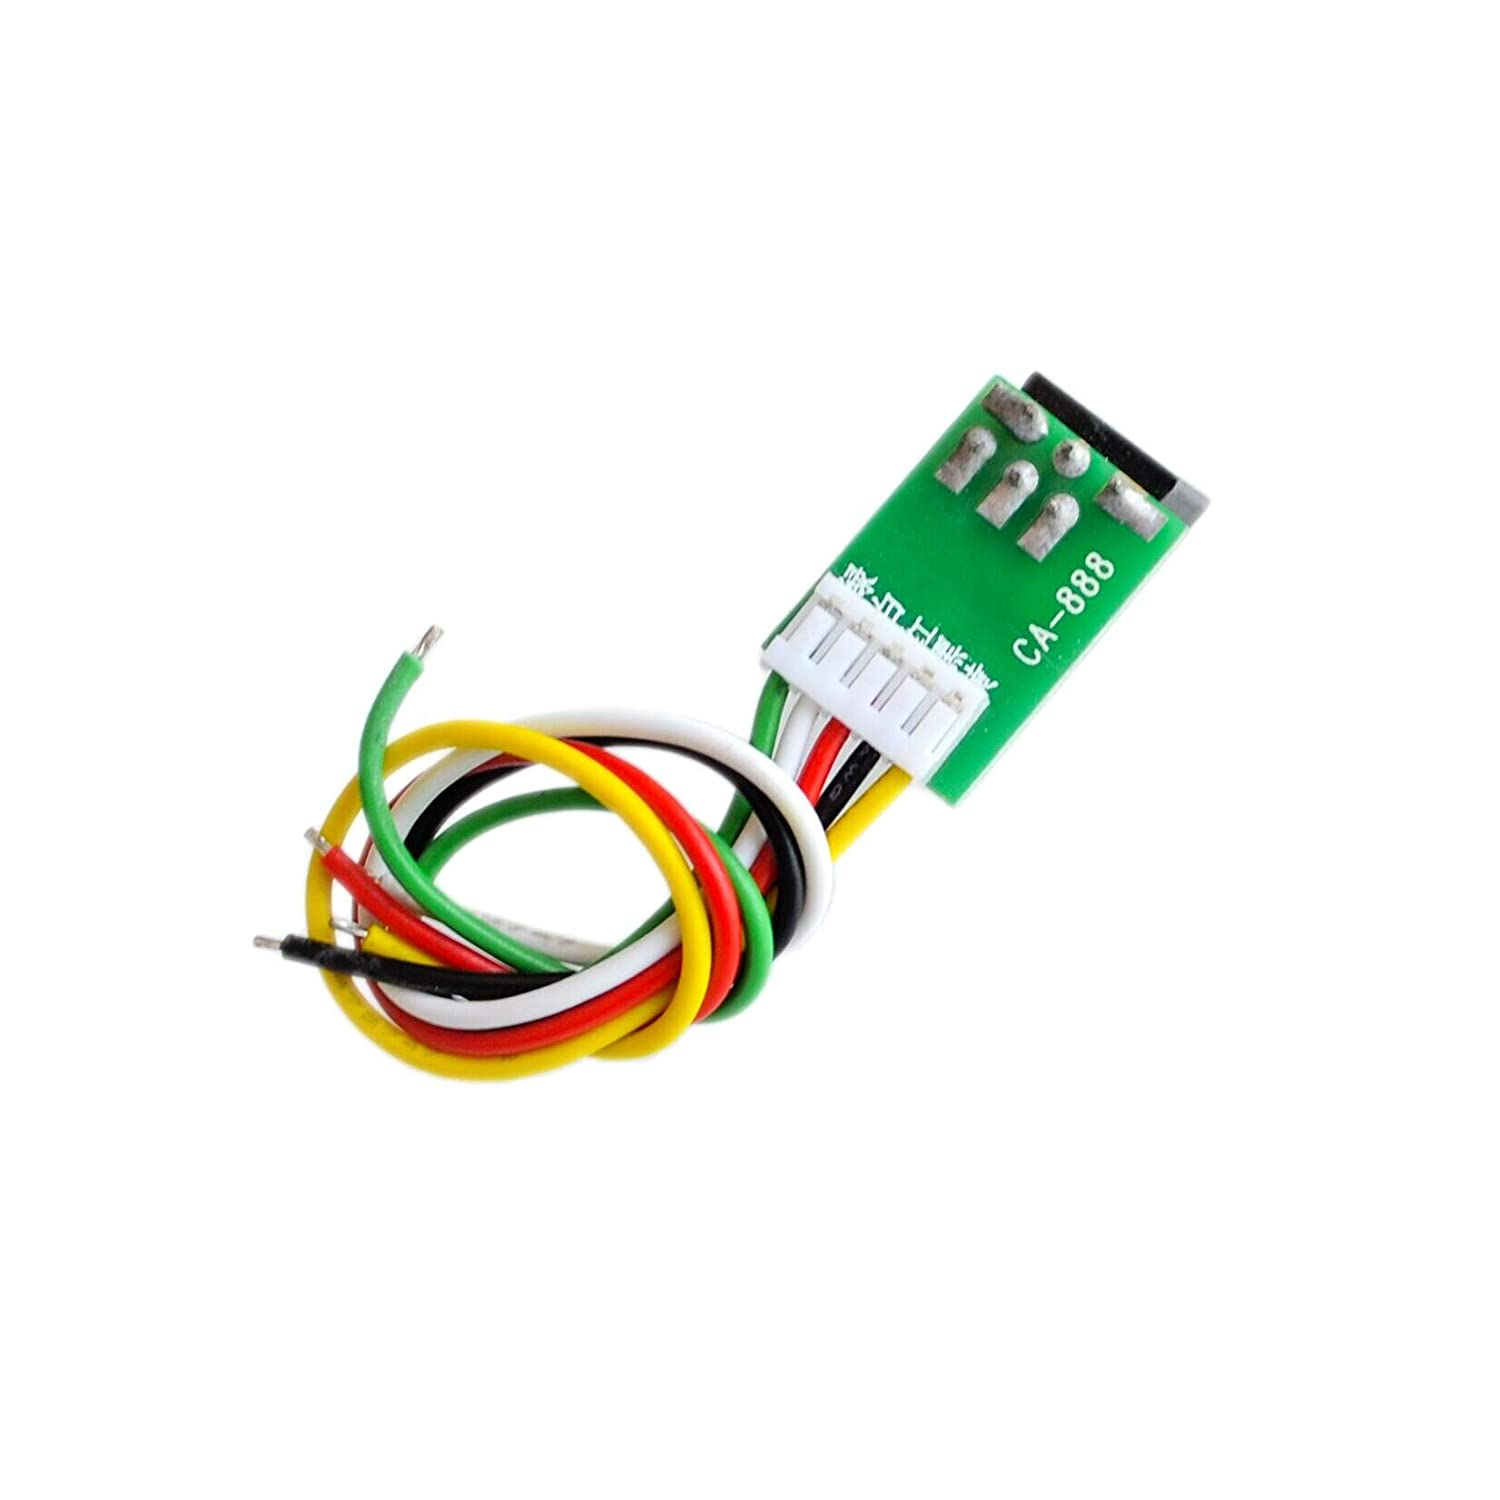 12-18V LCD Universal Power Supply Board Module Switch Tube 300V for LCD Display TV Maintenance